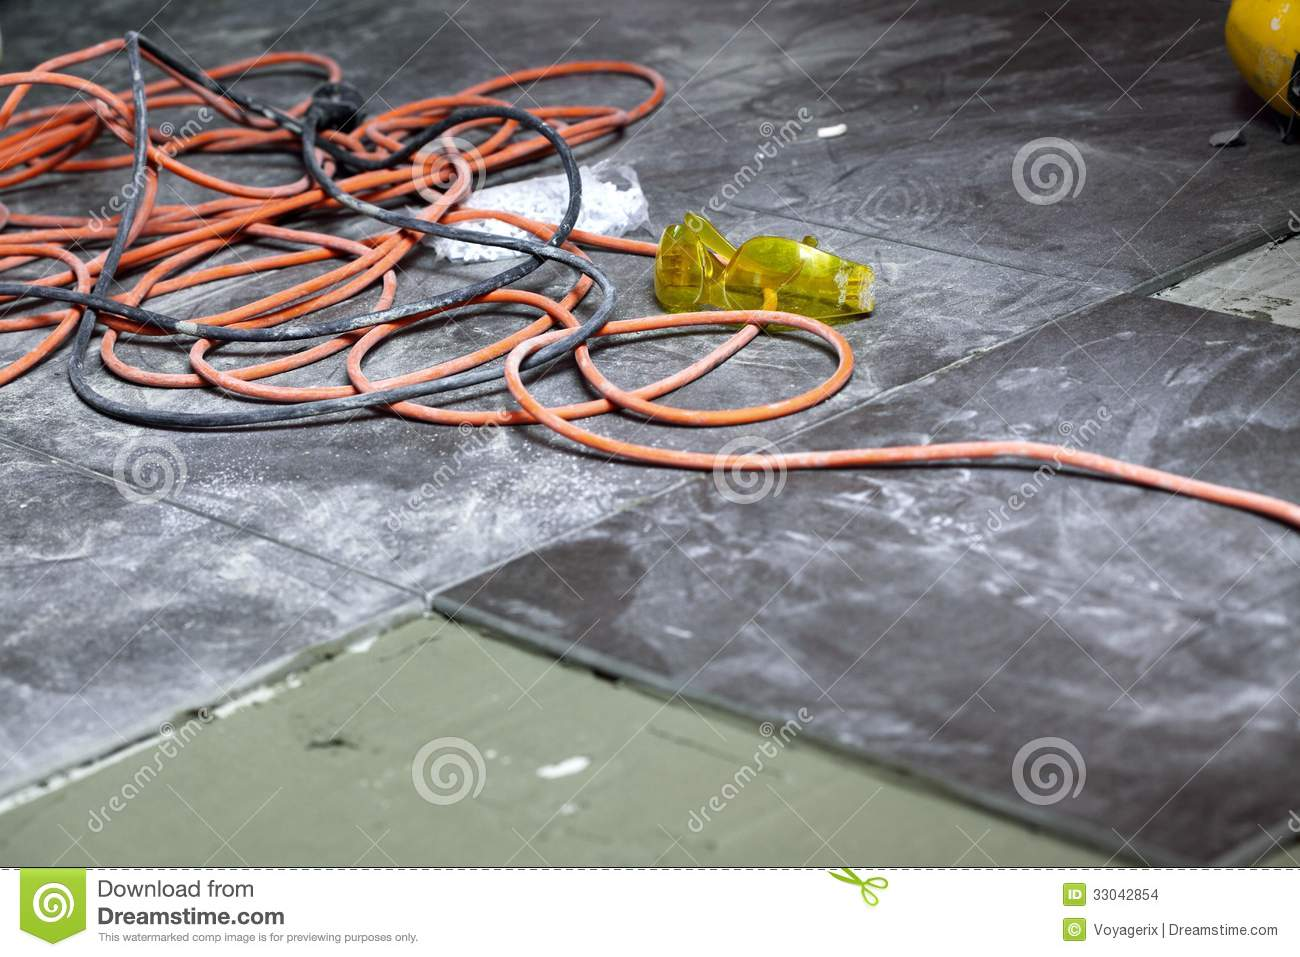 D681 furthermore 3 as well 15 Server Room Cabling Nightmares together with Toyota Body Types furthermore Shopexd. on wiring mess